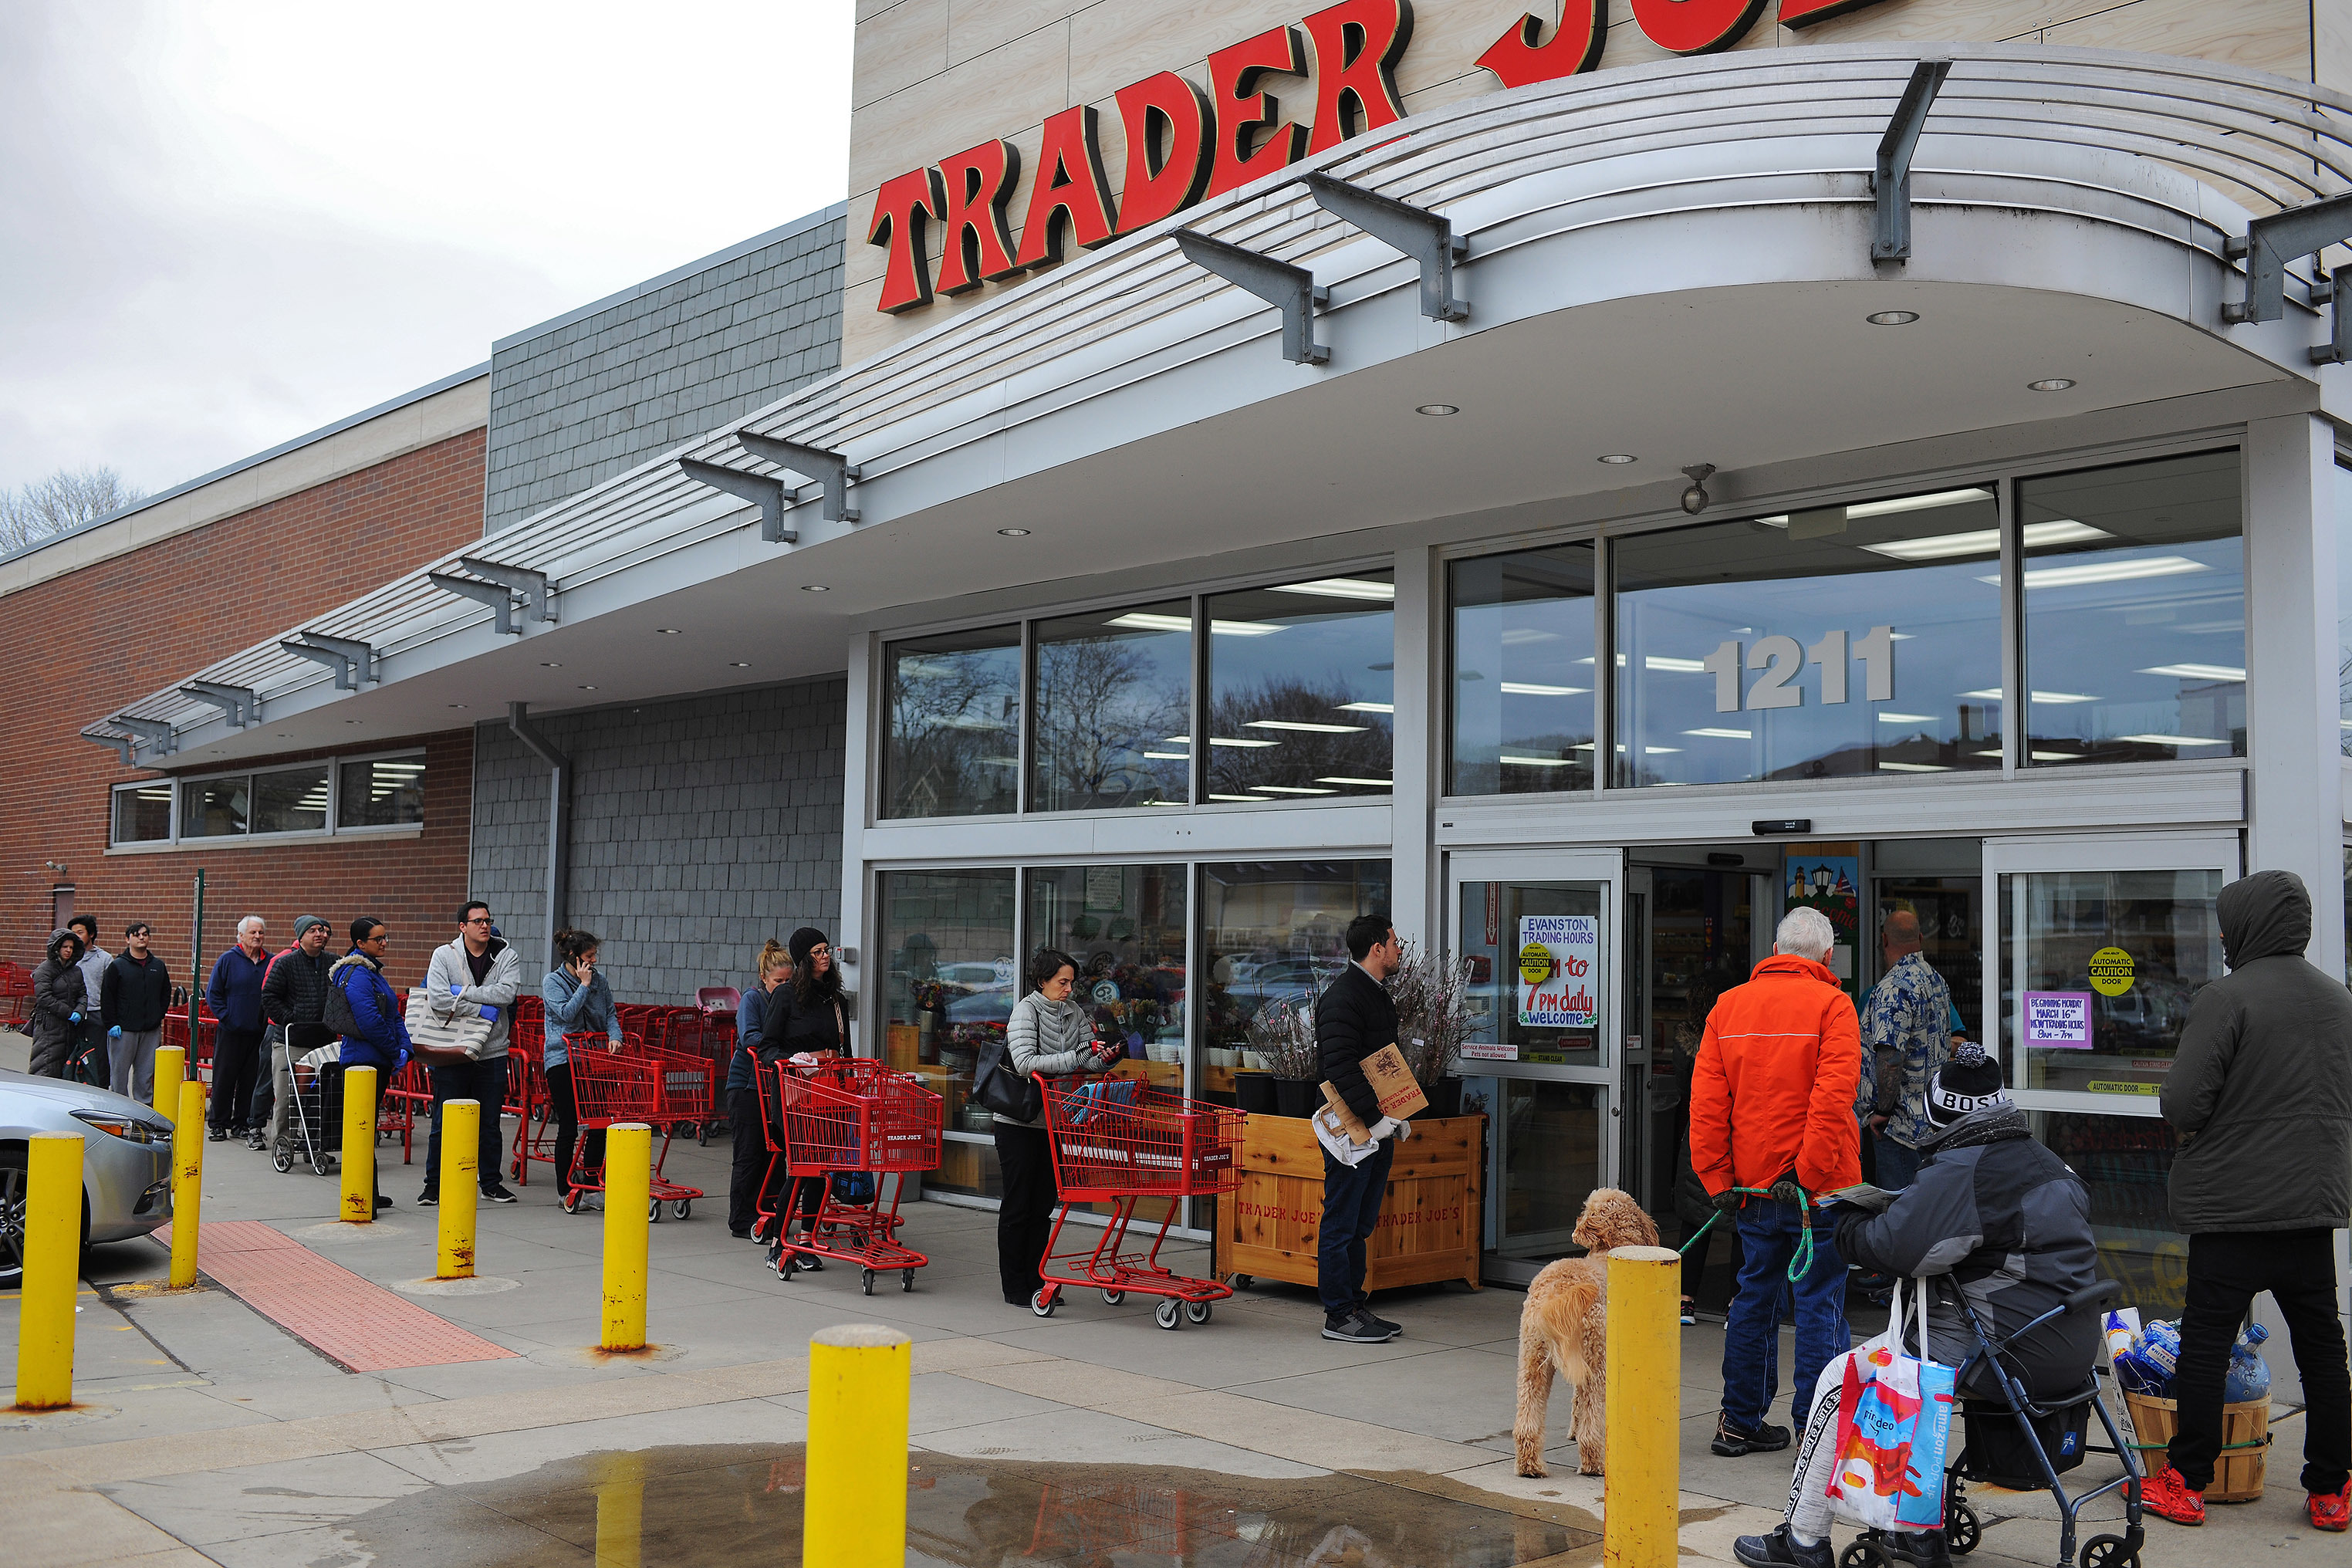 Shoppers line up to get into the the Trader Joe's in Evanston, IL on Friday, March 20, 2020.